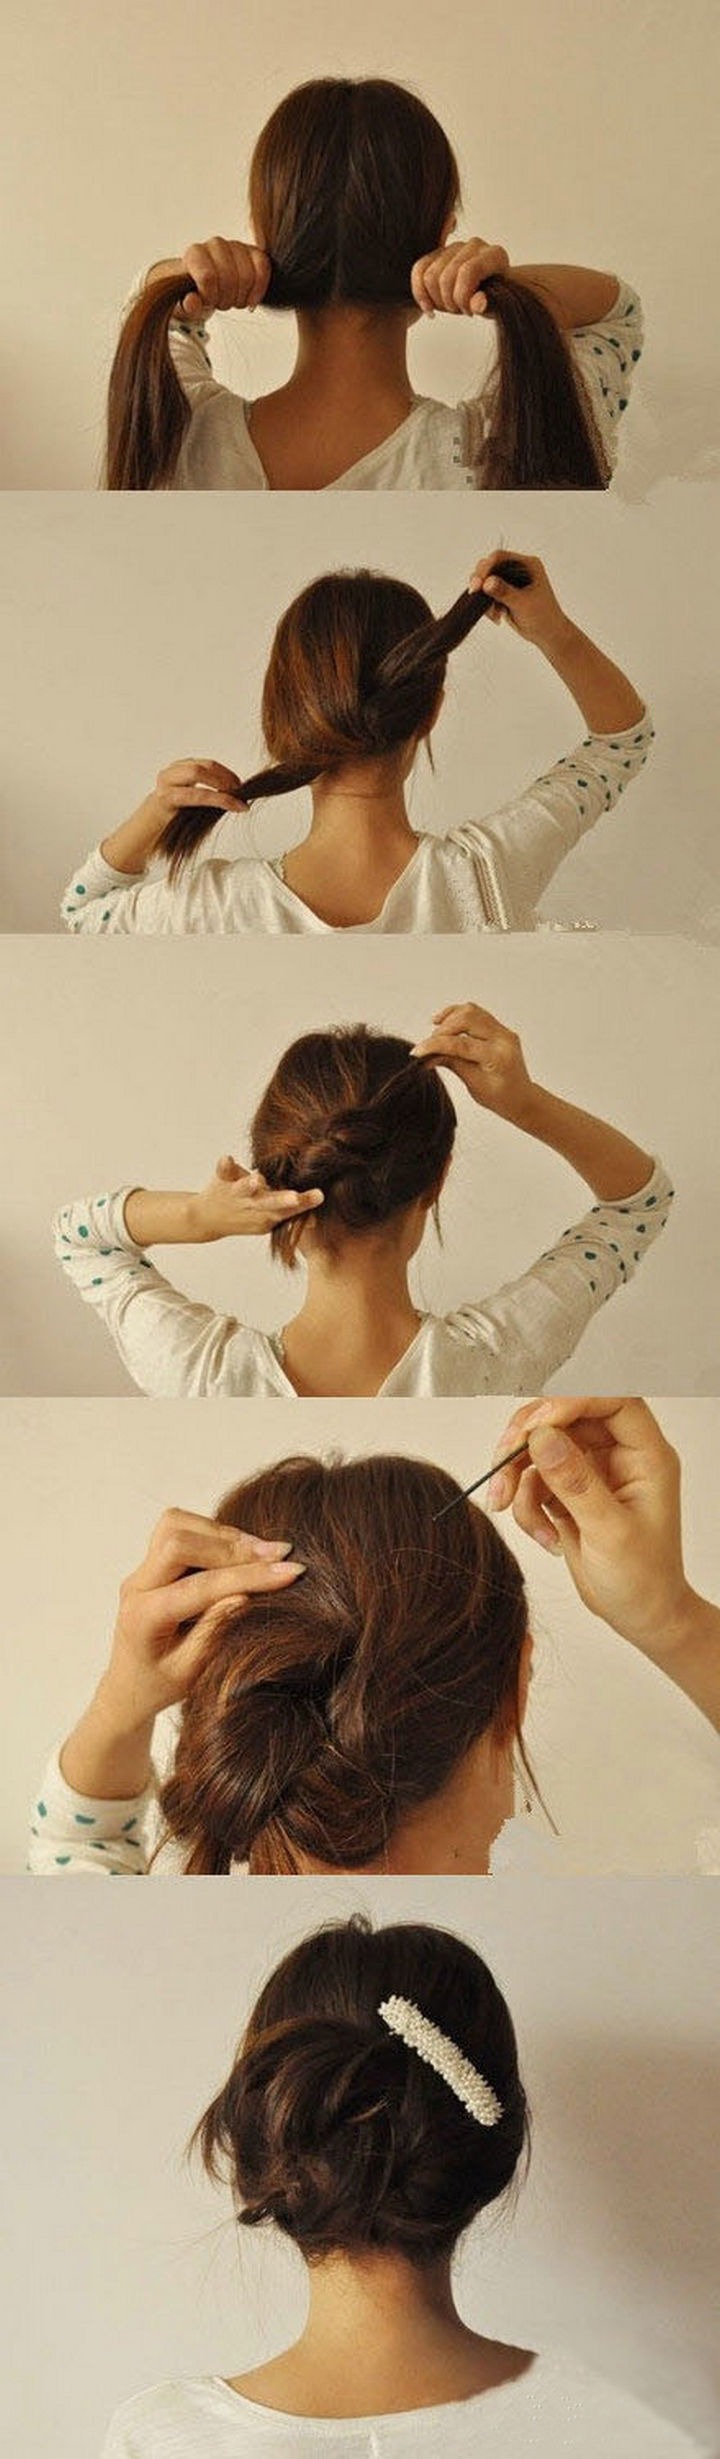 25 Lazy Girl Hair Hacks - A 20-second DIY updo hairstyle. Simply split, knot, twist, and pin.